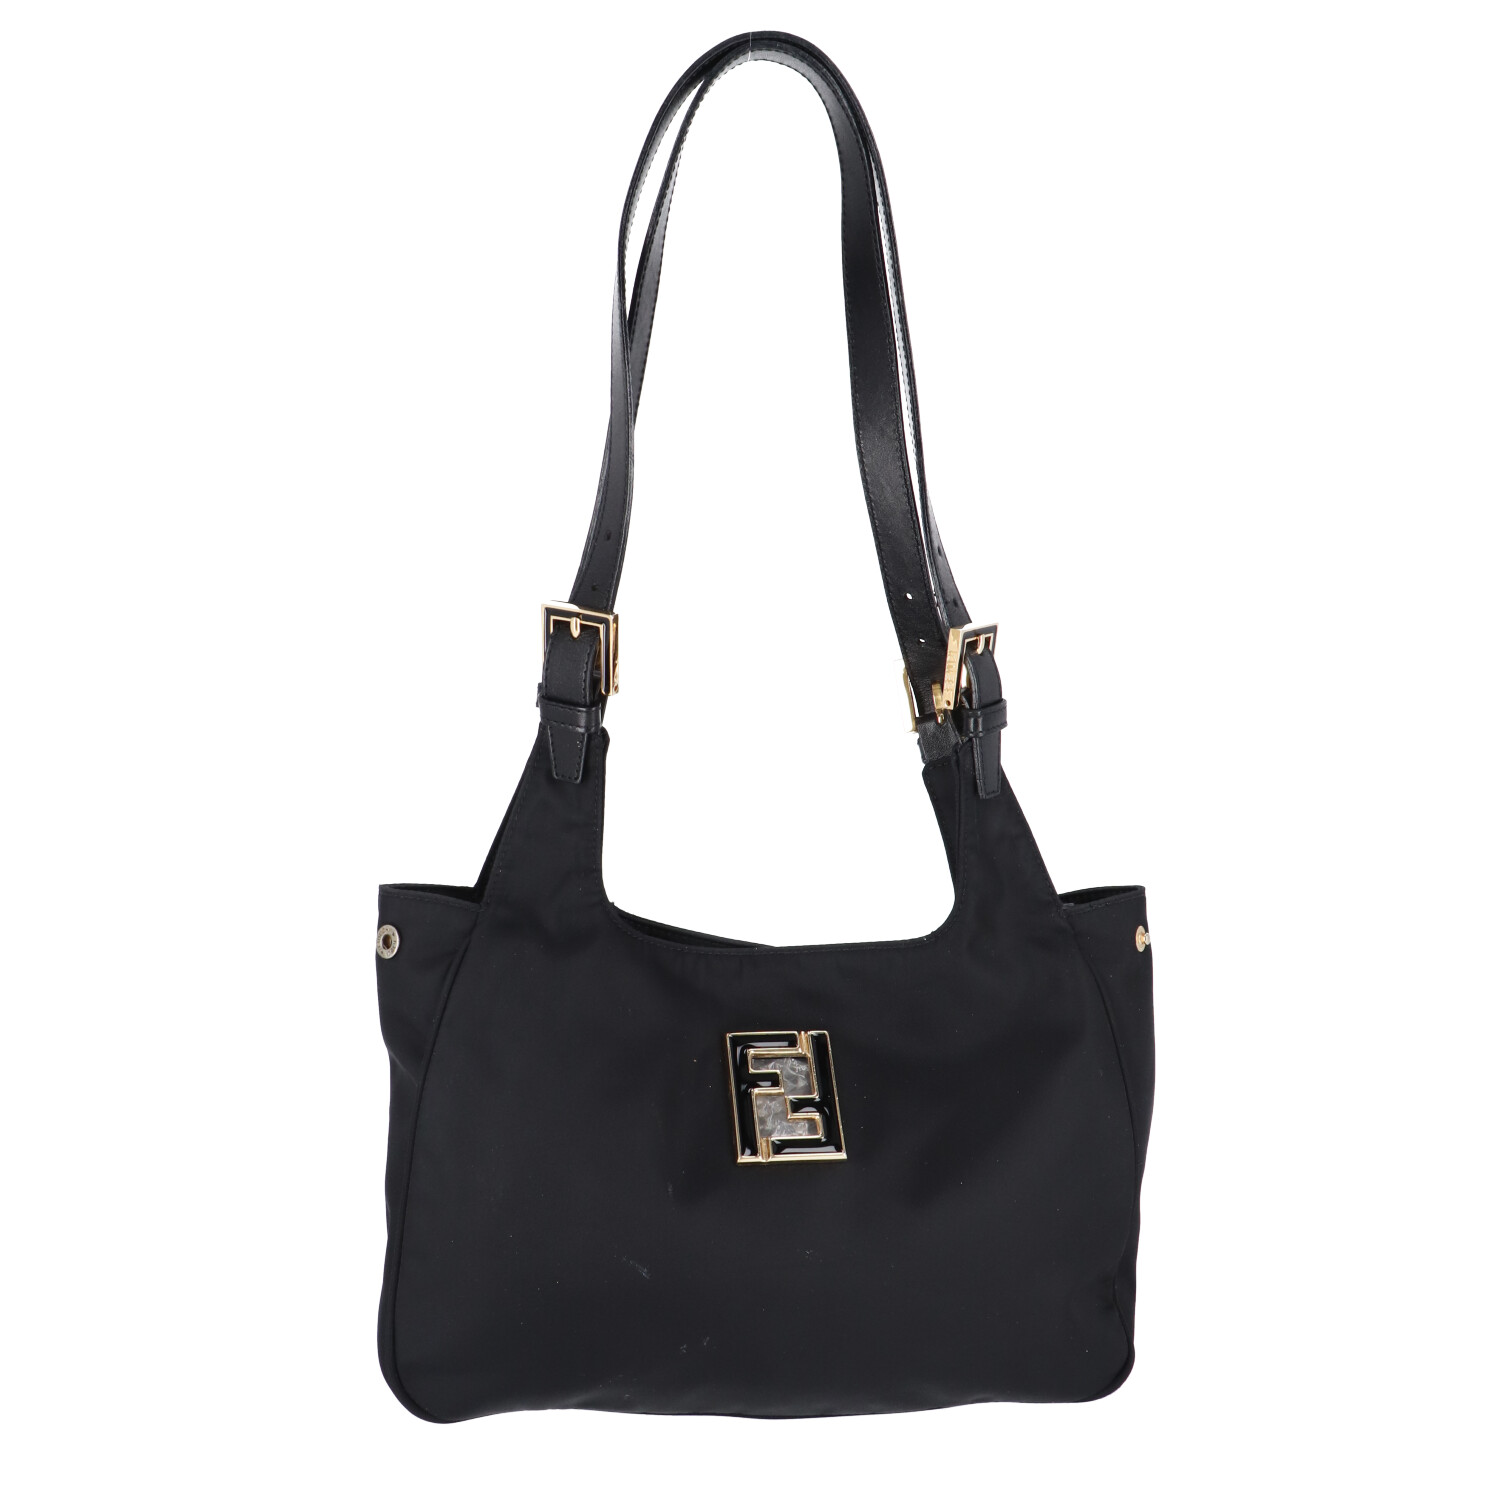 Fendi Black Nylon Shoulder Bag